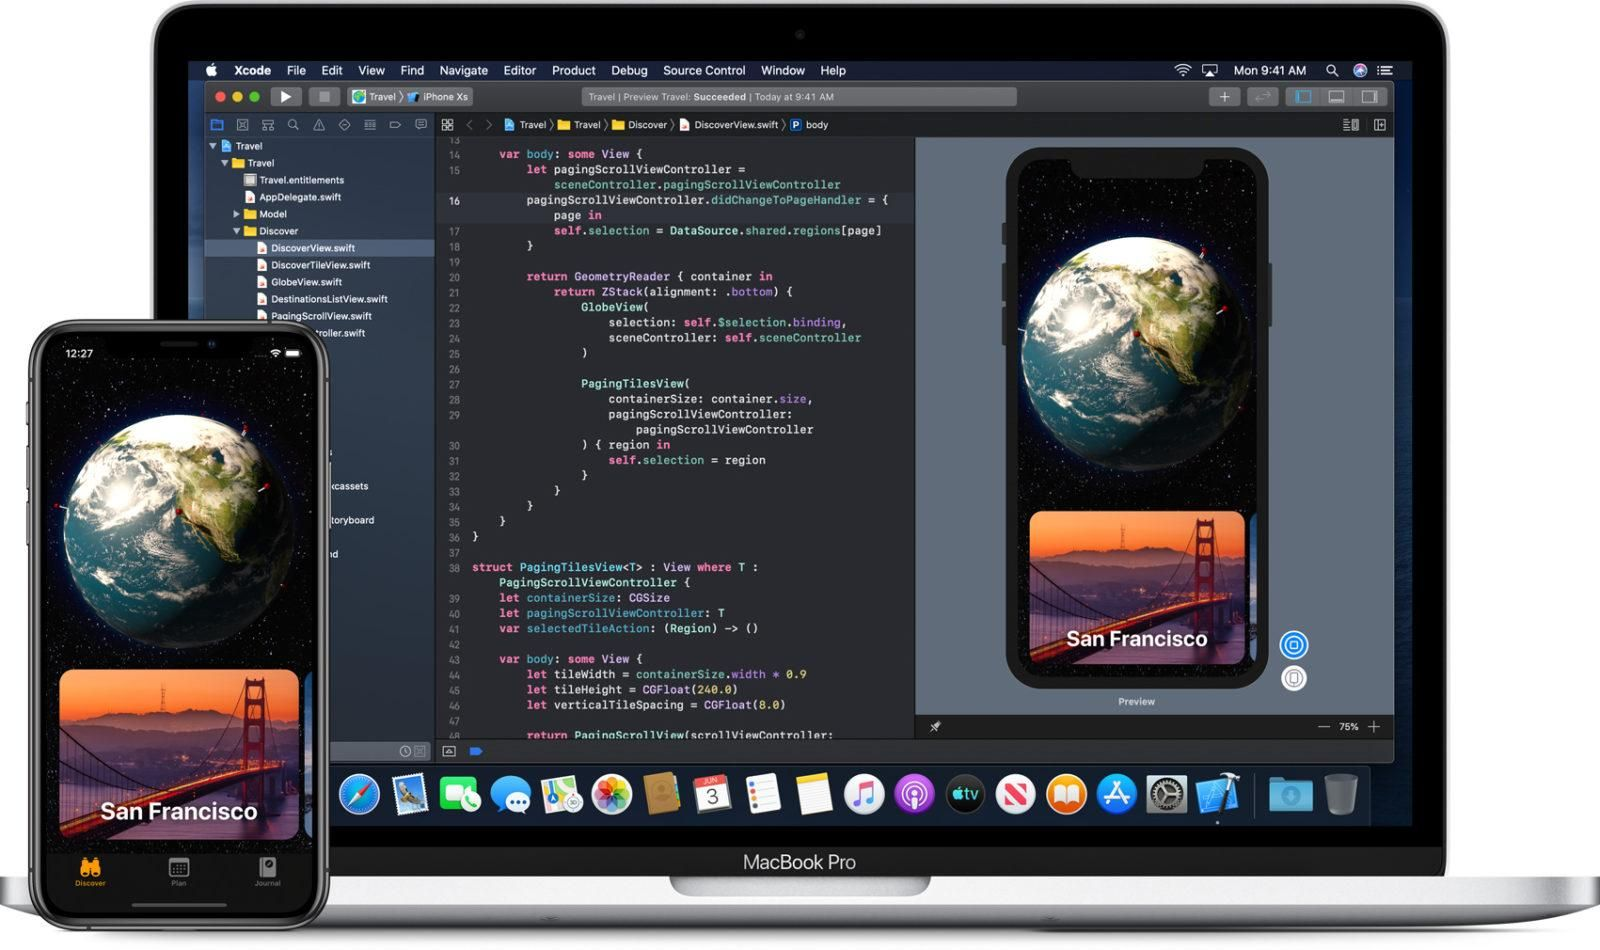 How To Test Ios App Without Developer Account View More Makaka Org Unity Unity3d Unityassetstore Assetstore Unityass Ios Apps Unity Tutorials App